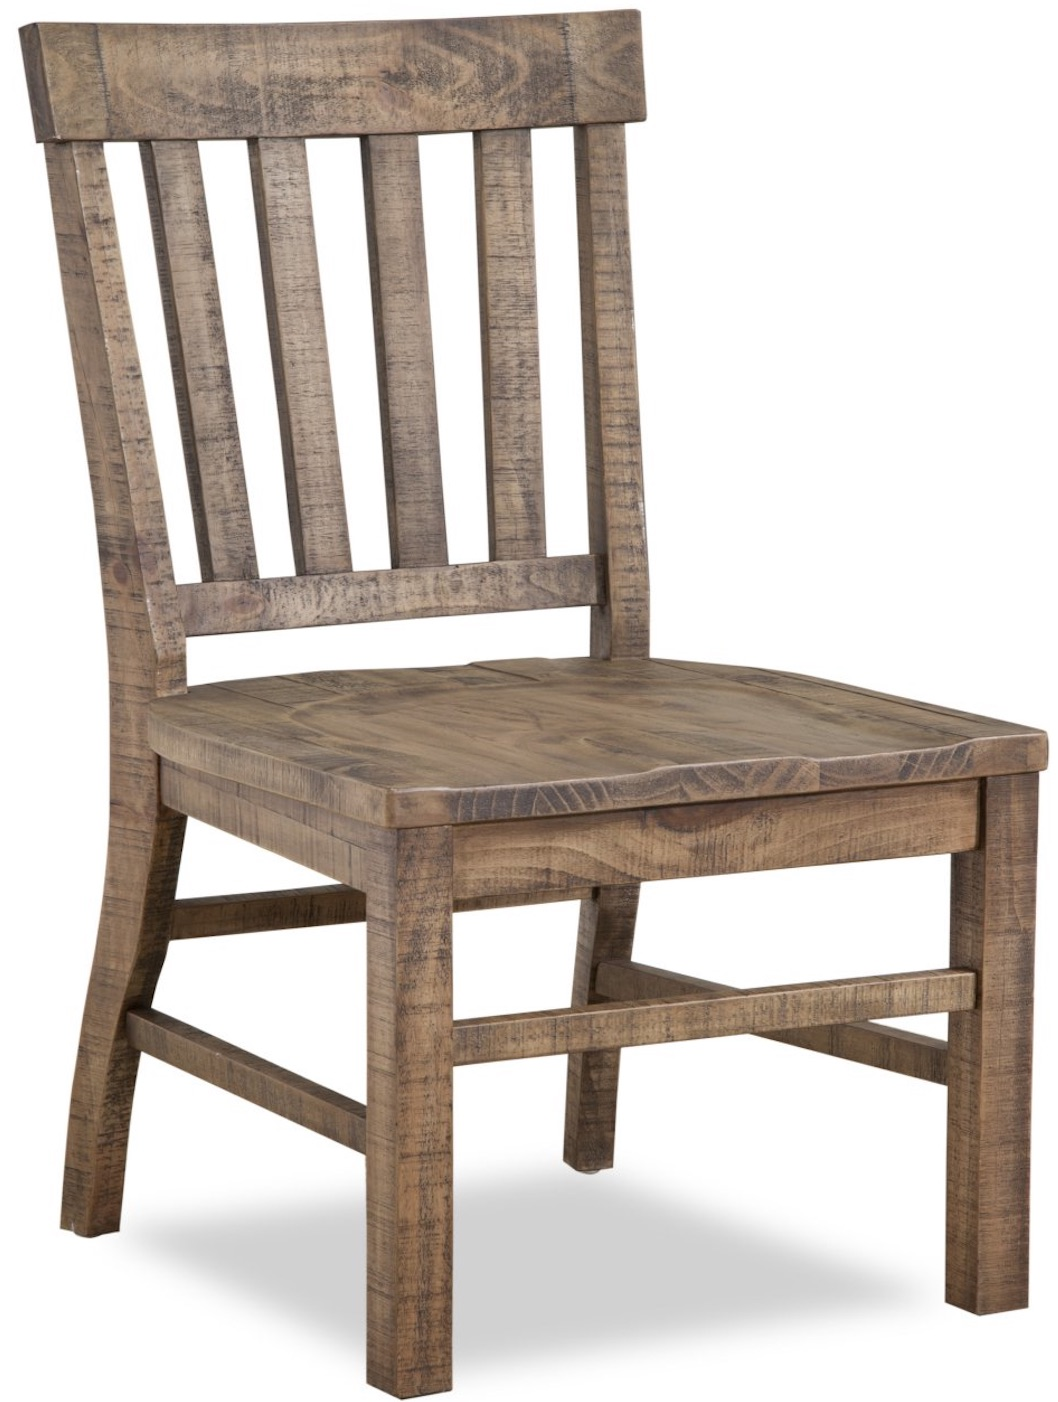 Dining Chairs for Family Gatherings Magnussen Willoughby Dining Side Chair #Farmhouse #Chairs #FarmhouseChairs #RusticDecor #CountryDecor #FarmhouseDecor #VintageInspired #DiningChairs #FamilyDinners #FamilyMeals #FamilyTime